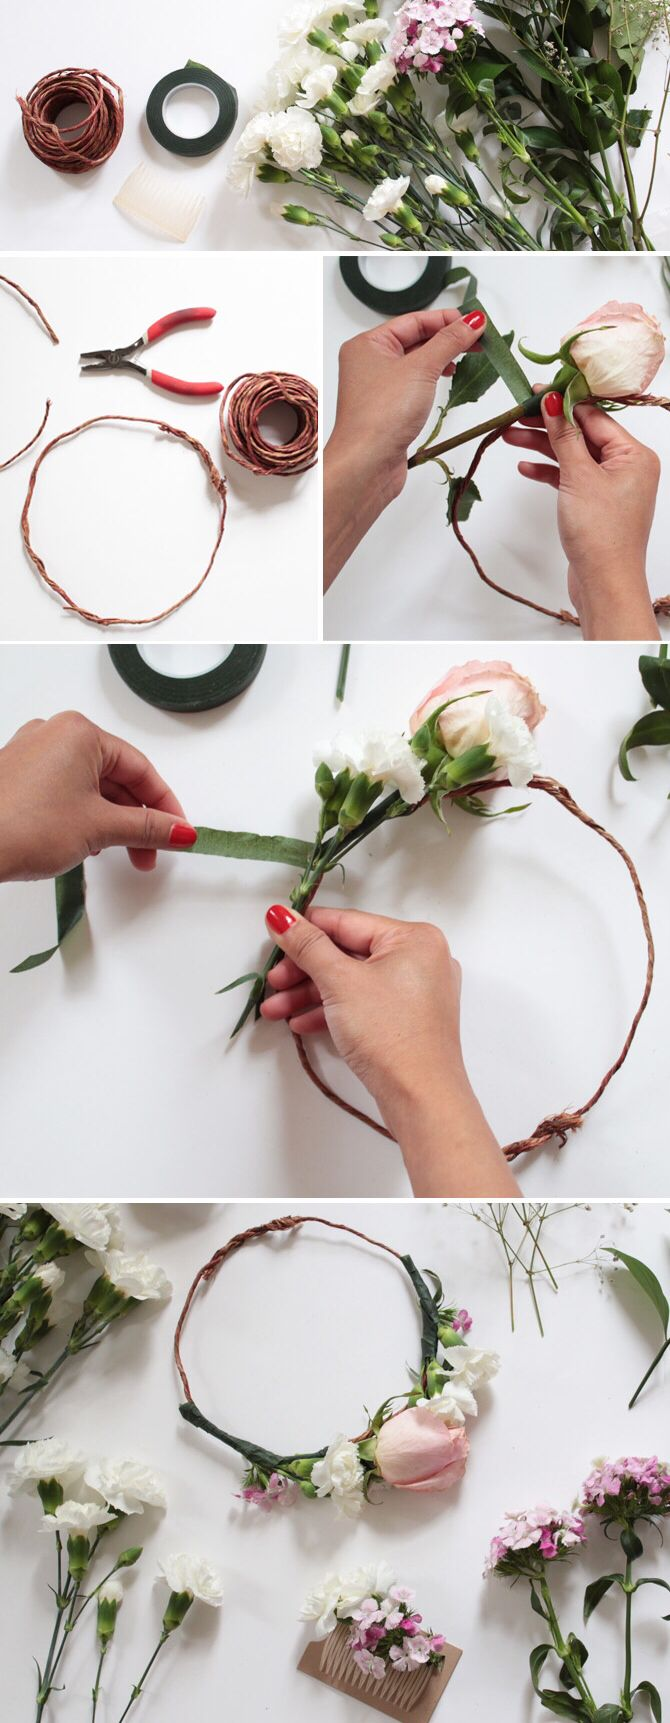 Pin By Woodie Sprague On Craft Ideas Pinterest Diy Flower Crown